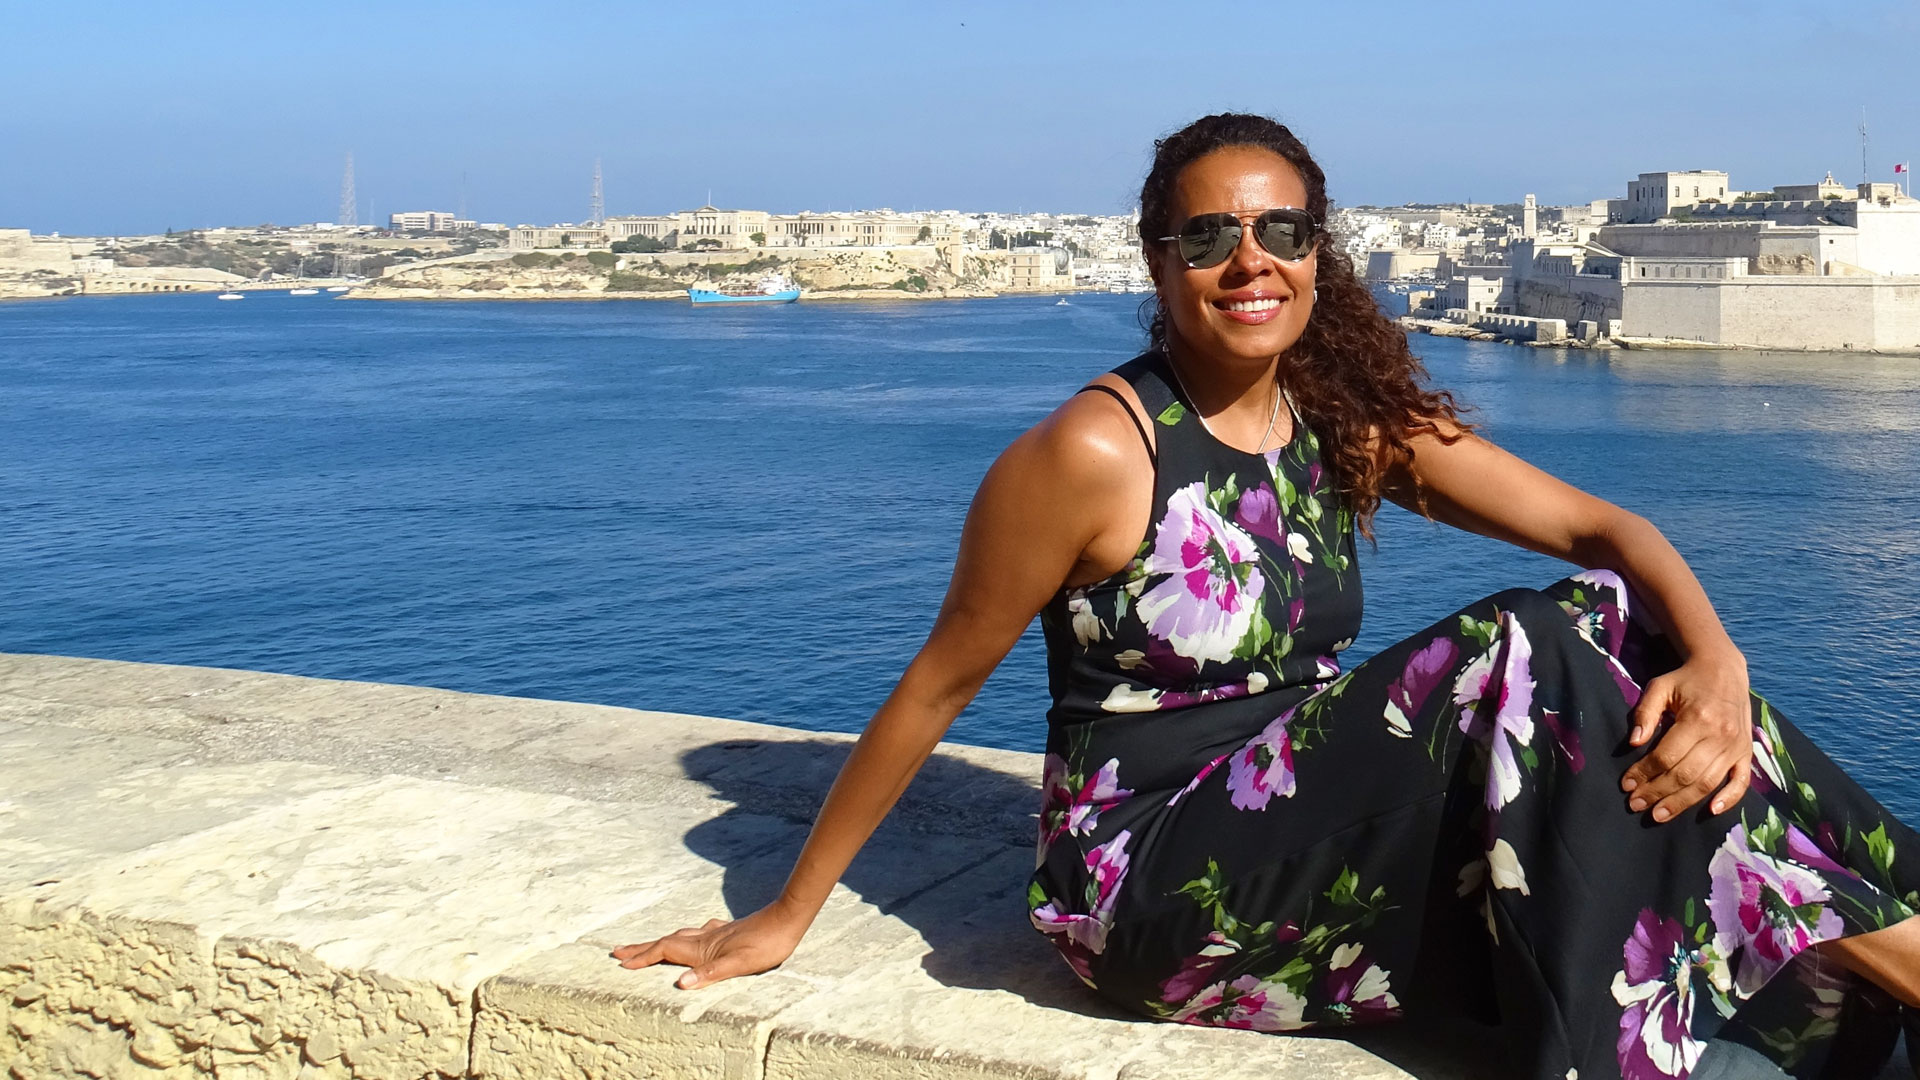 Malta's History And Culture Will Leave You Breathless